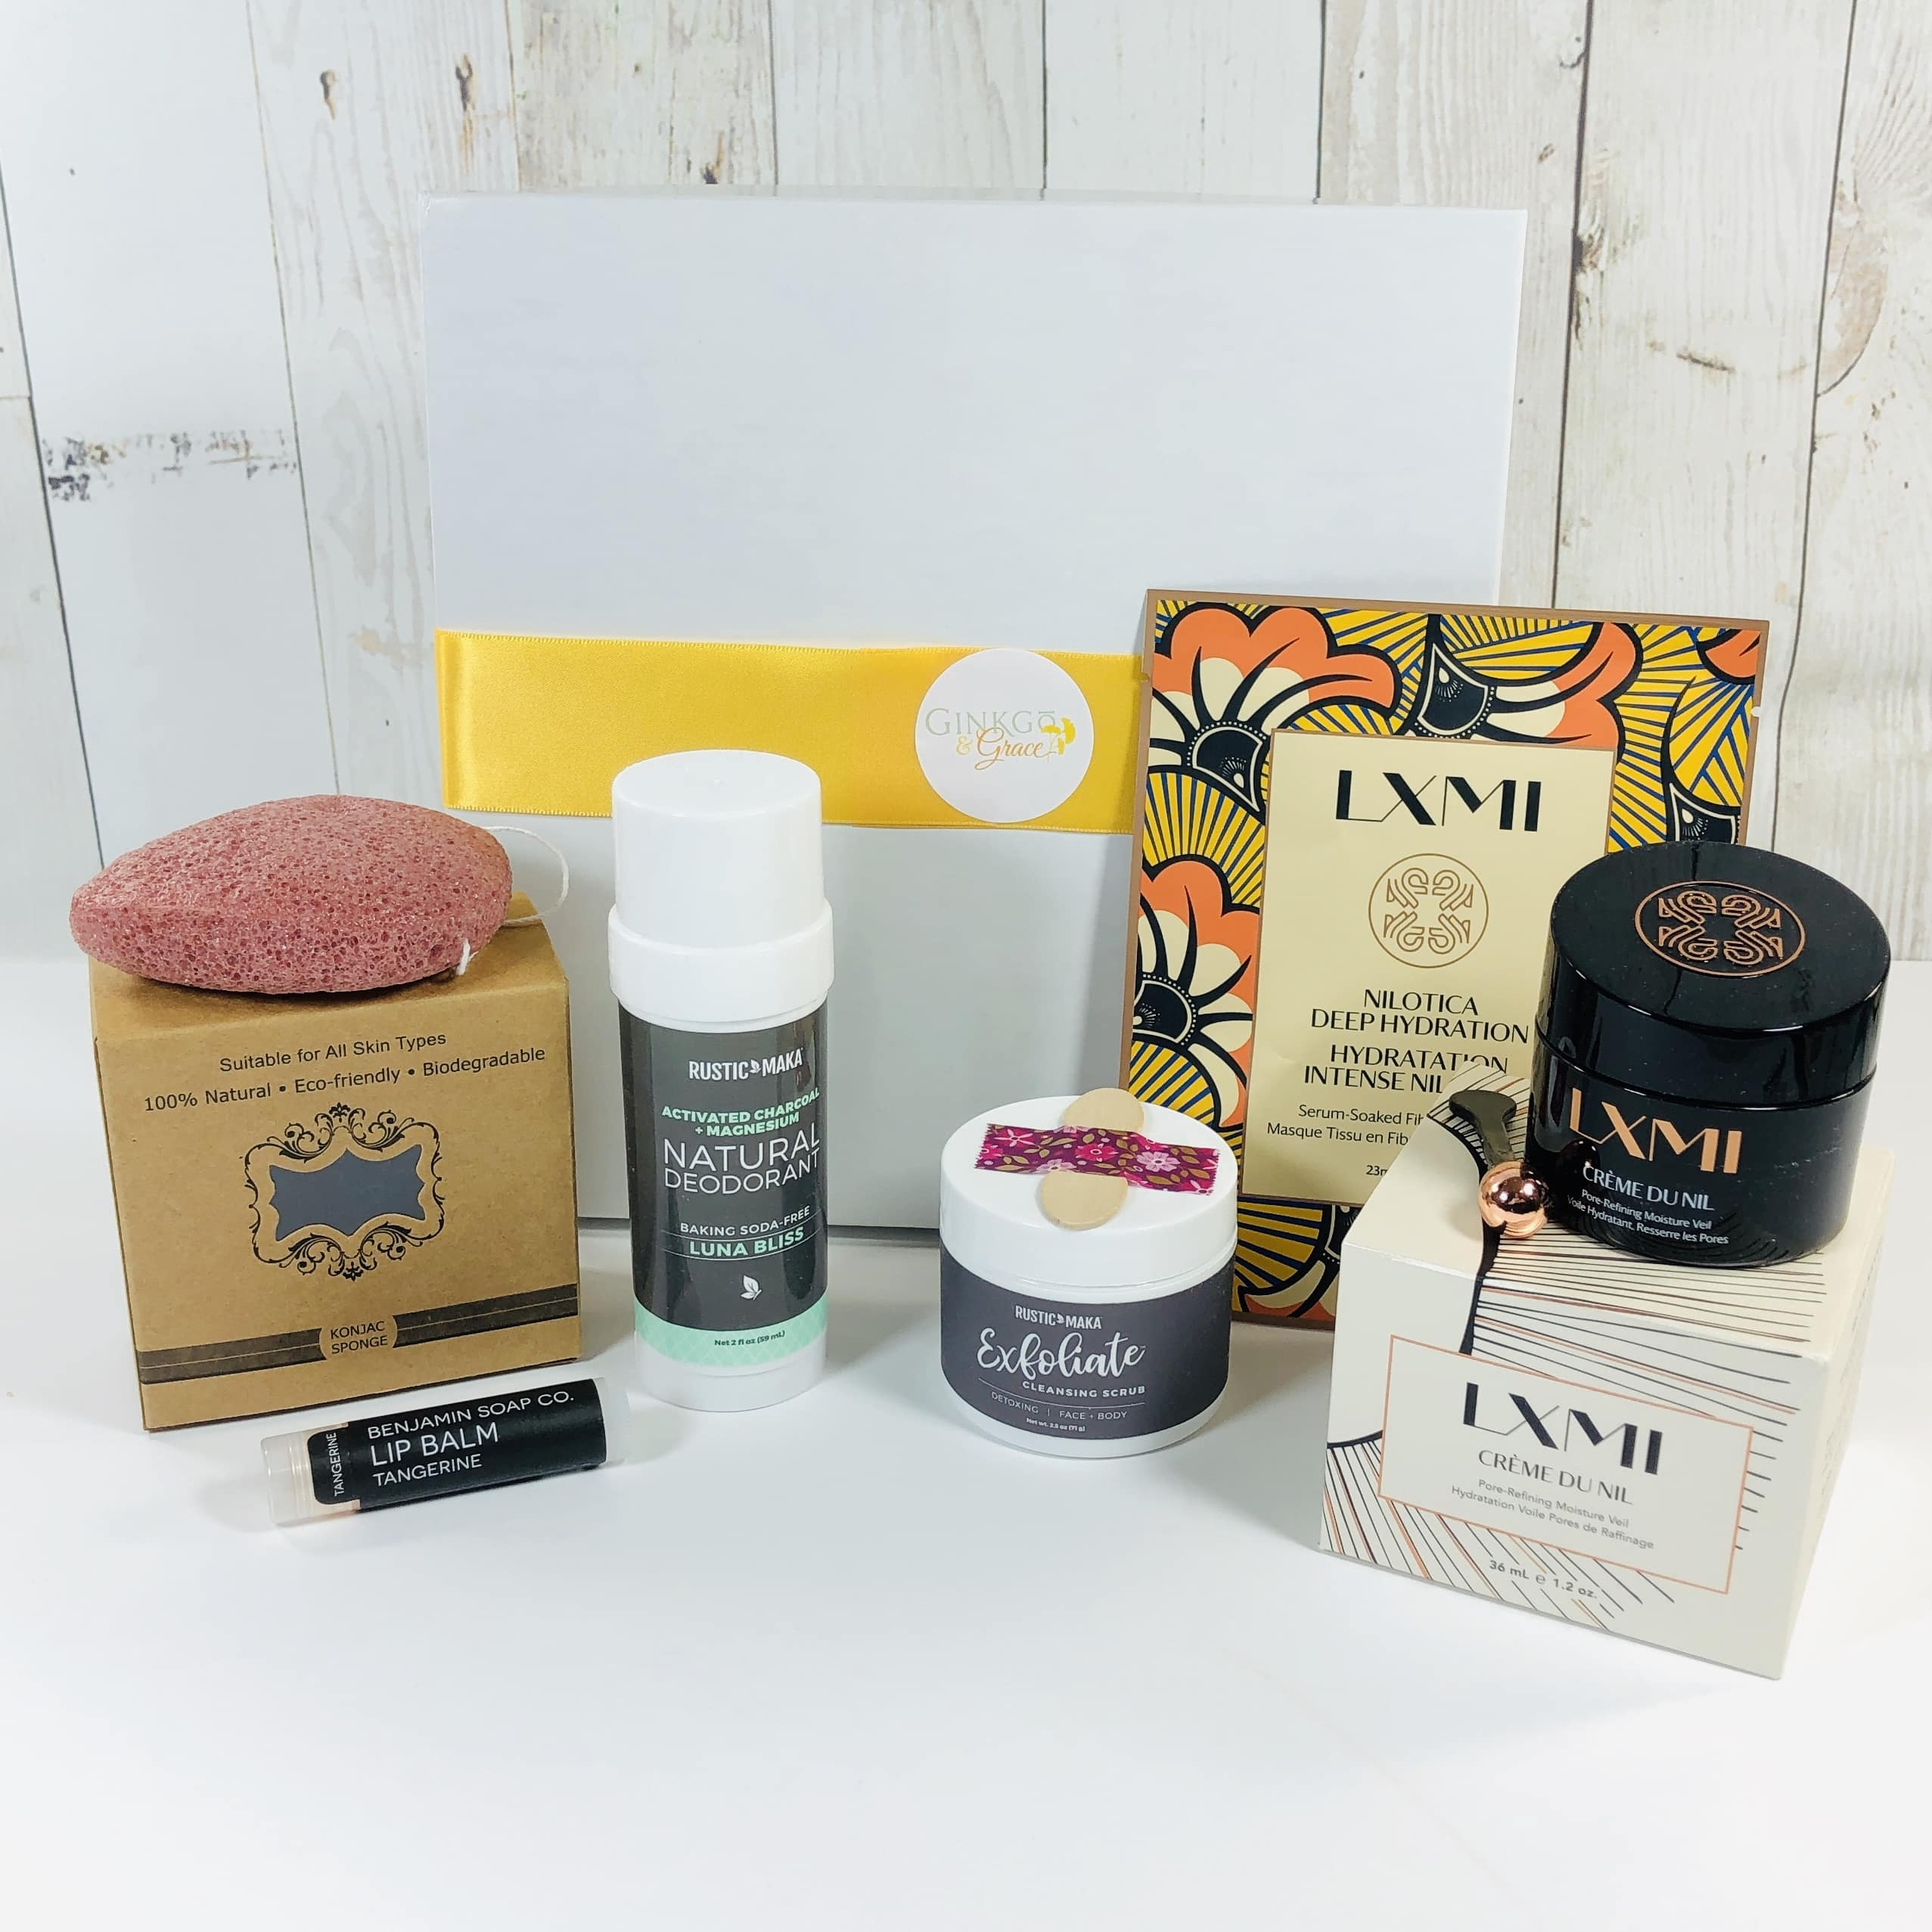 Ginkgo & Grace November 2019 Subscription Box Review